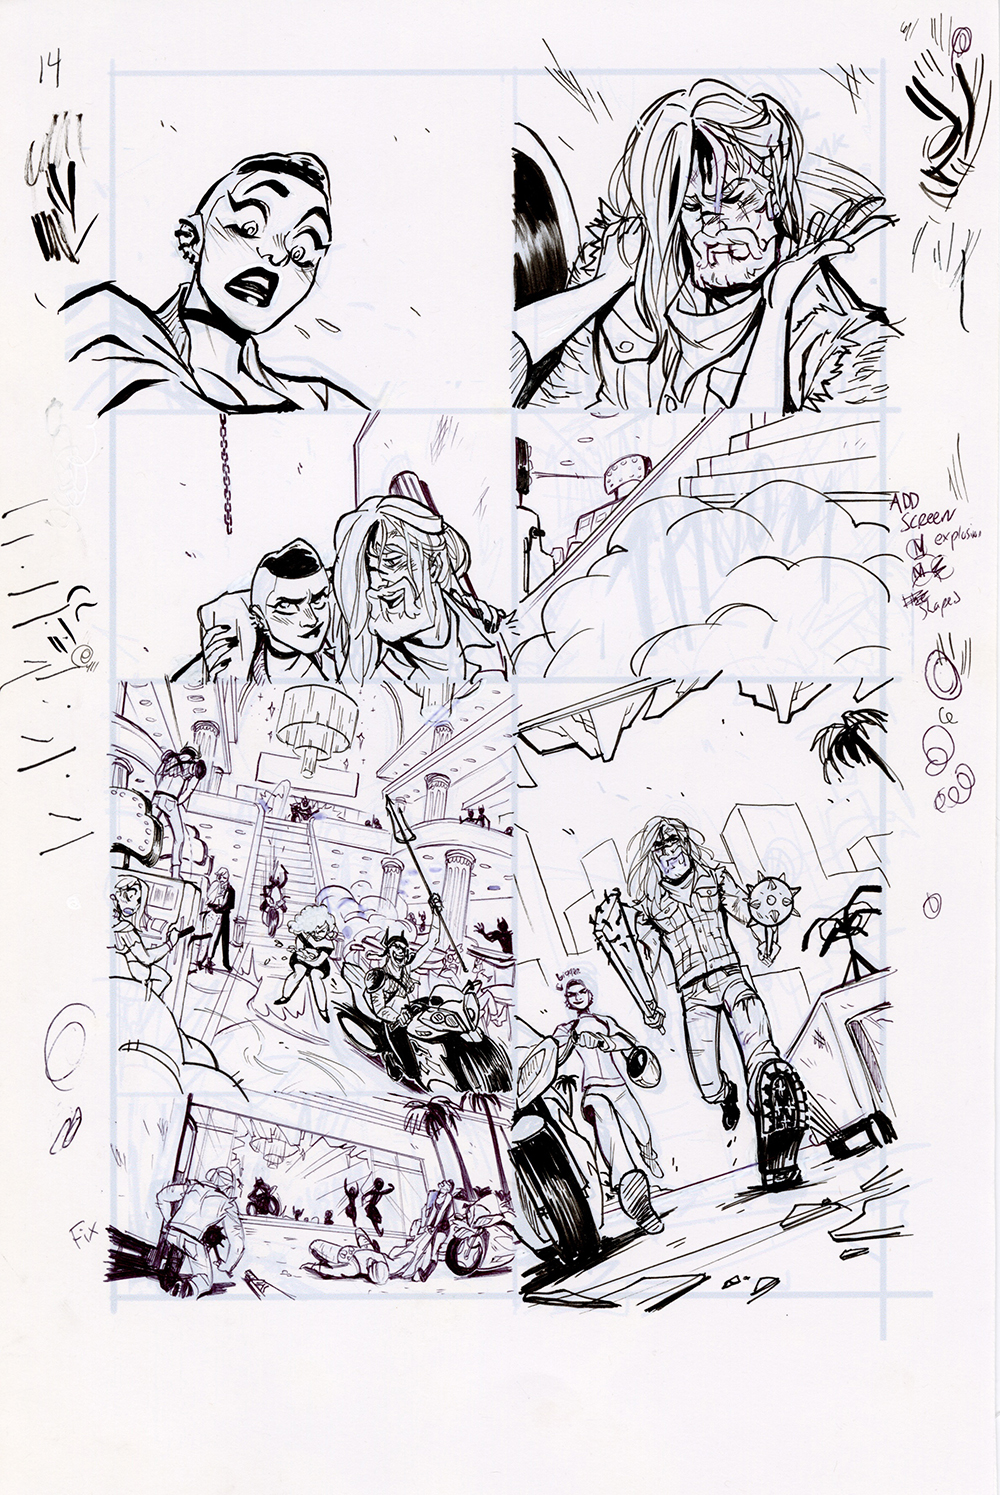 Motor Crush Vol. 2 Original Comic Page #14 (UNFRAMED), Babs Tarr